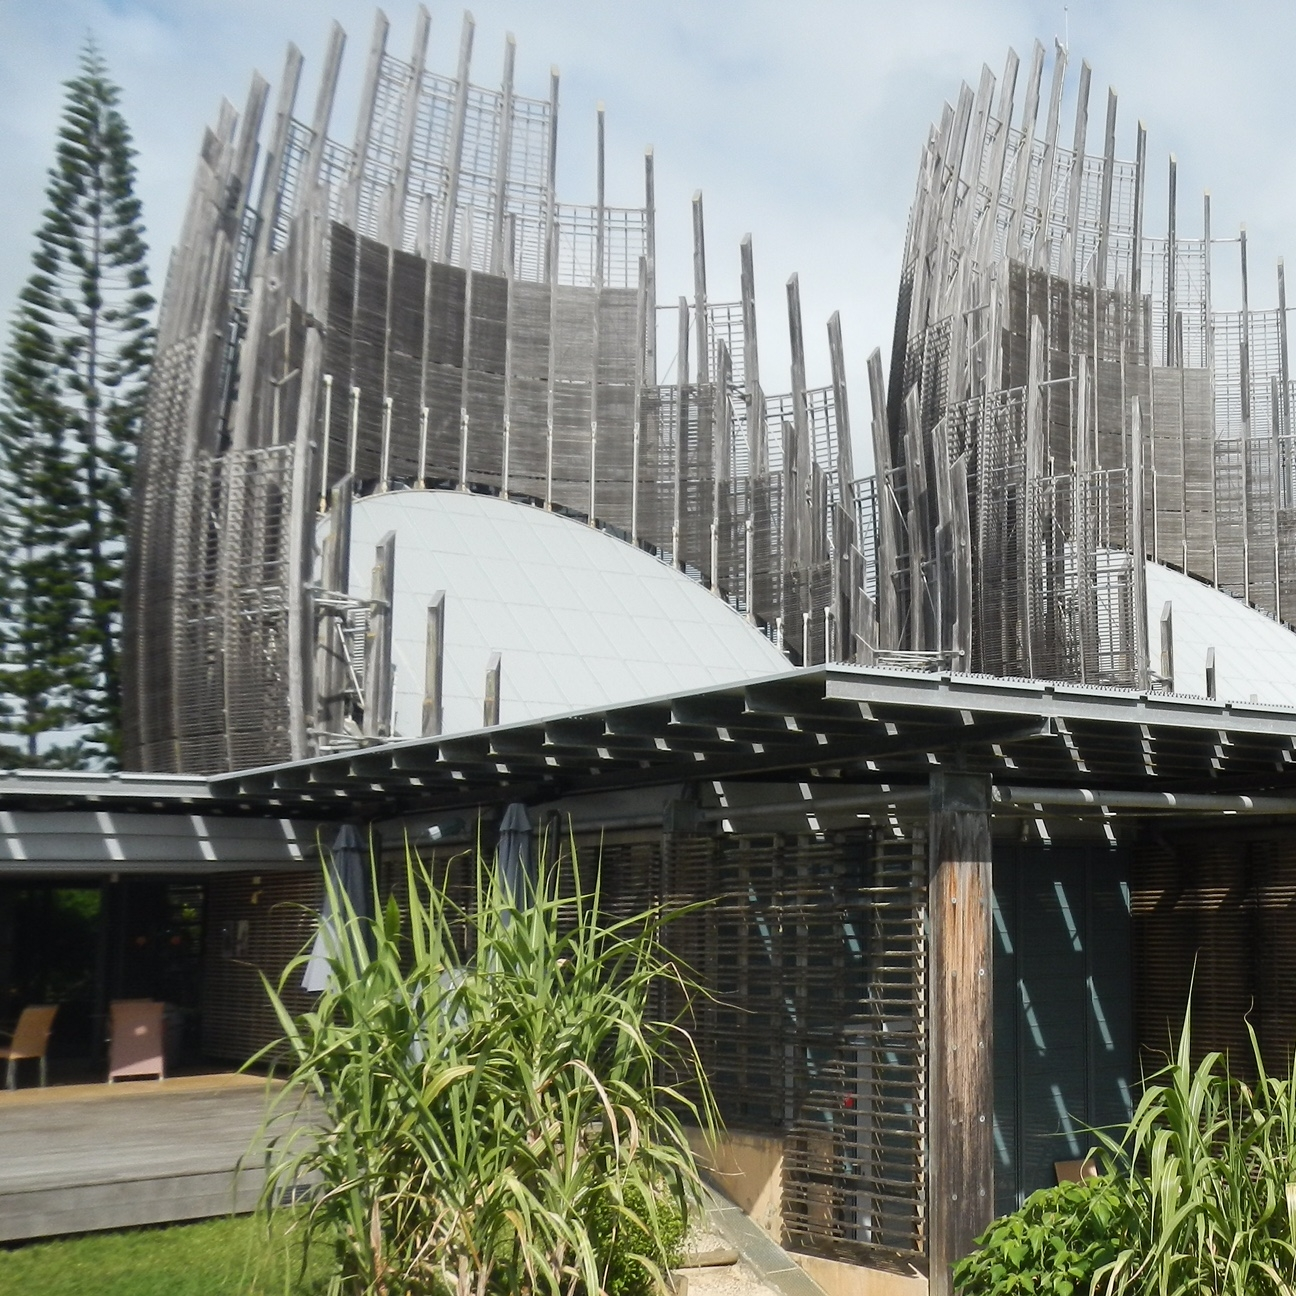 Noumea by The Doubtful Traveller